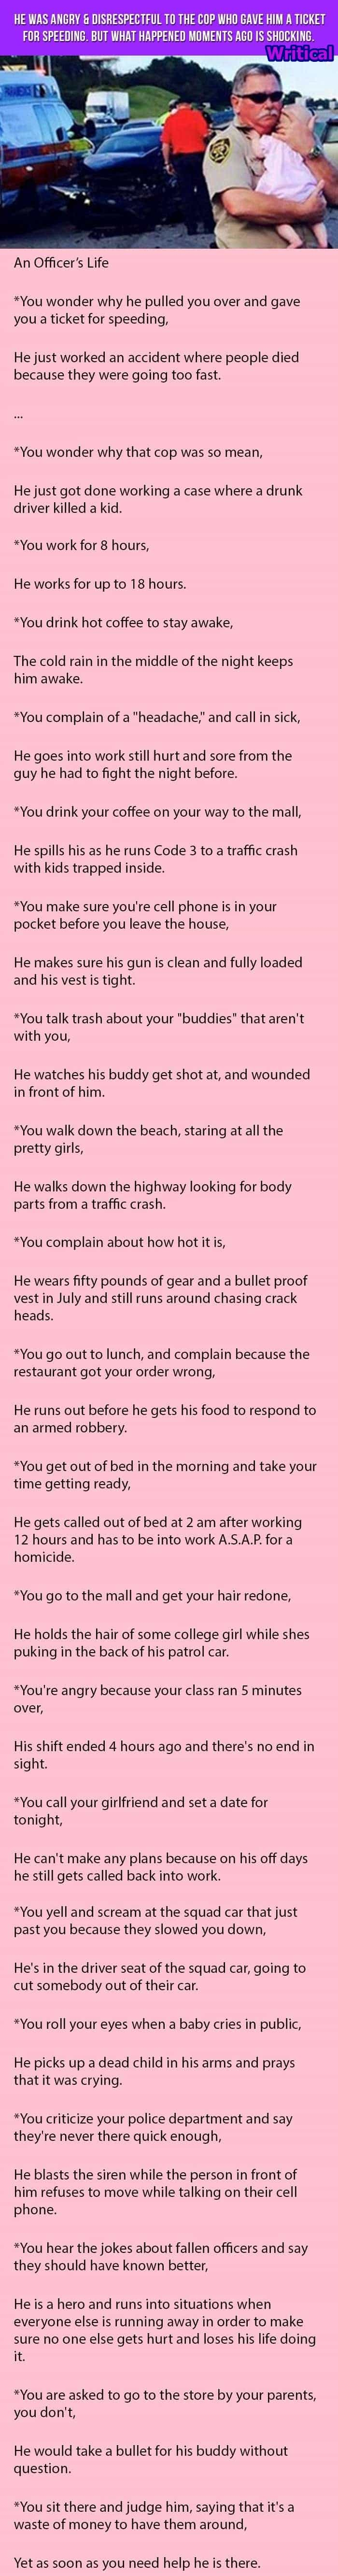 Understanding cops in a different way. A must read